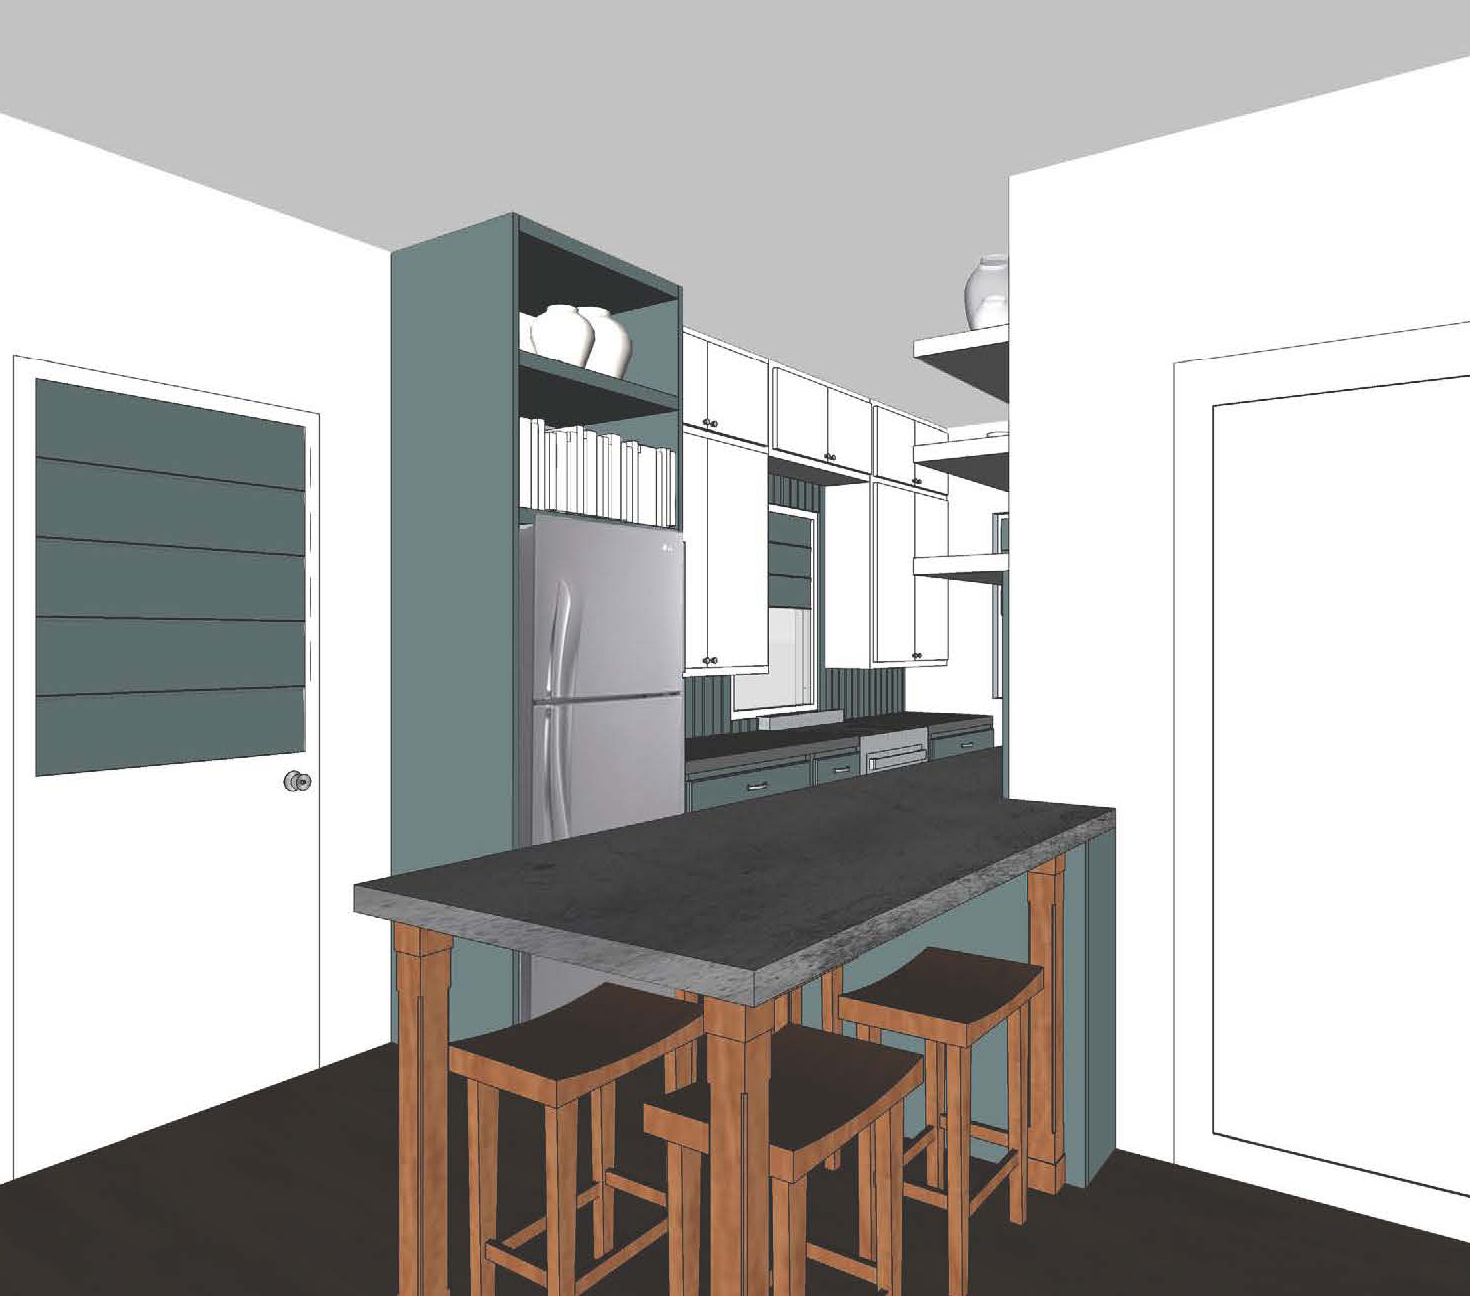 Normal Kitchen Design Of Kitchen Design Project Designed By Lauren Begen Wood